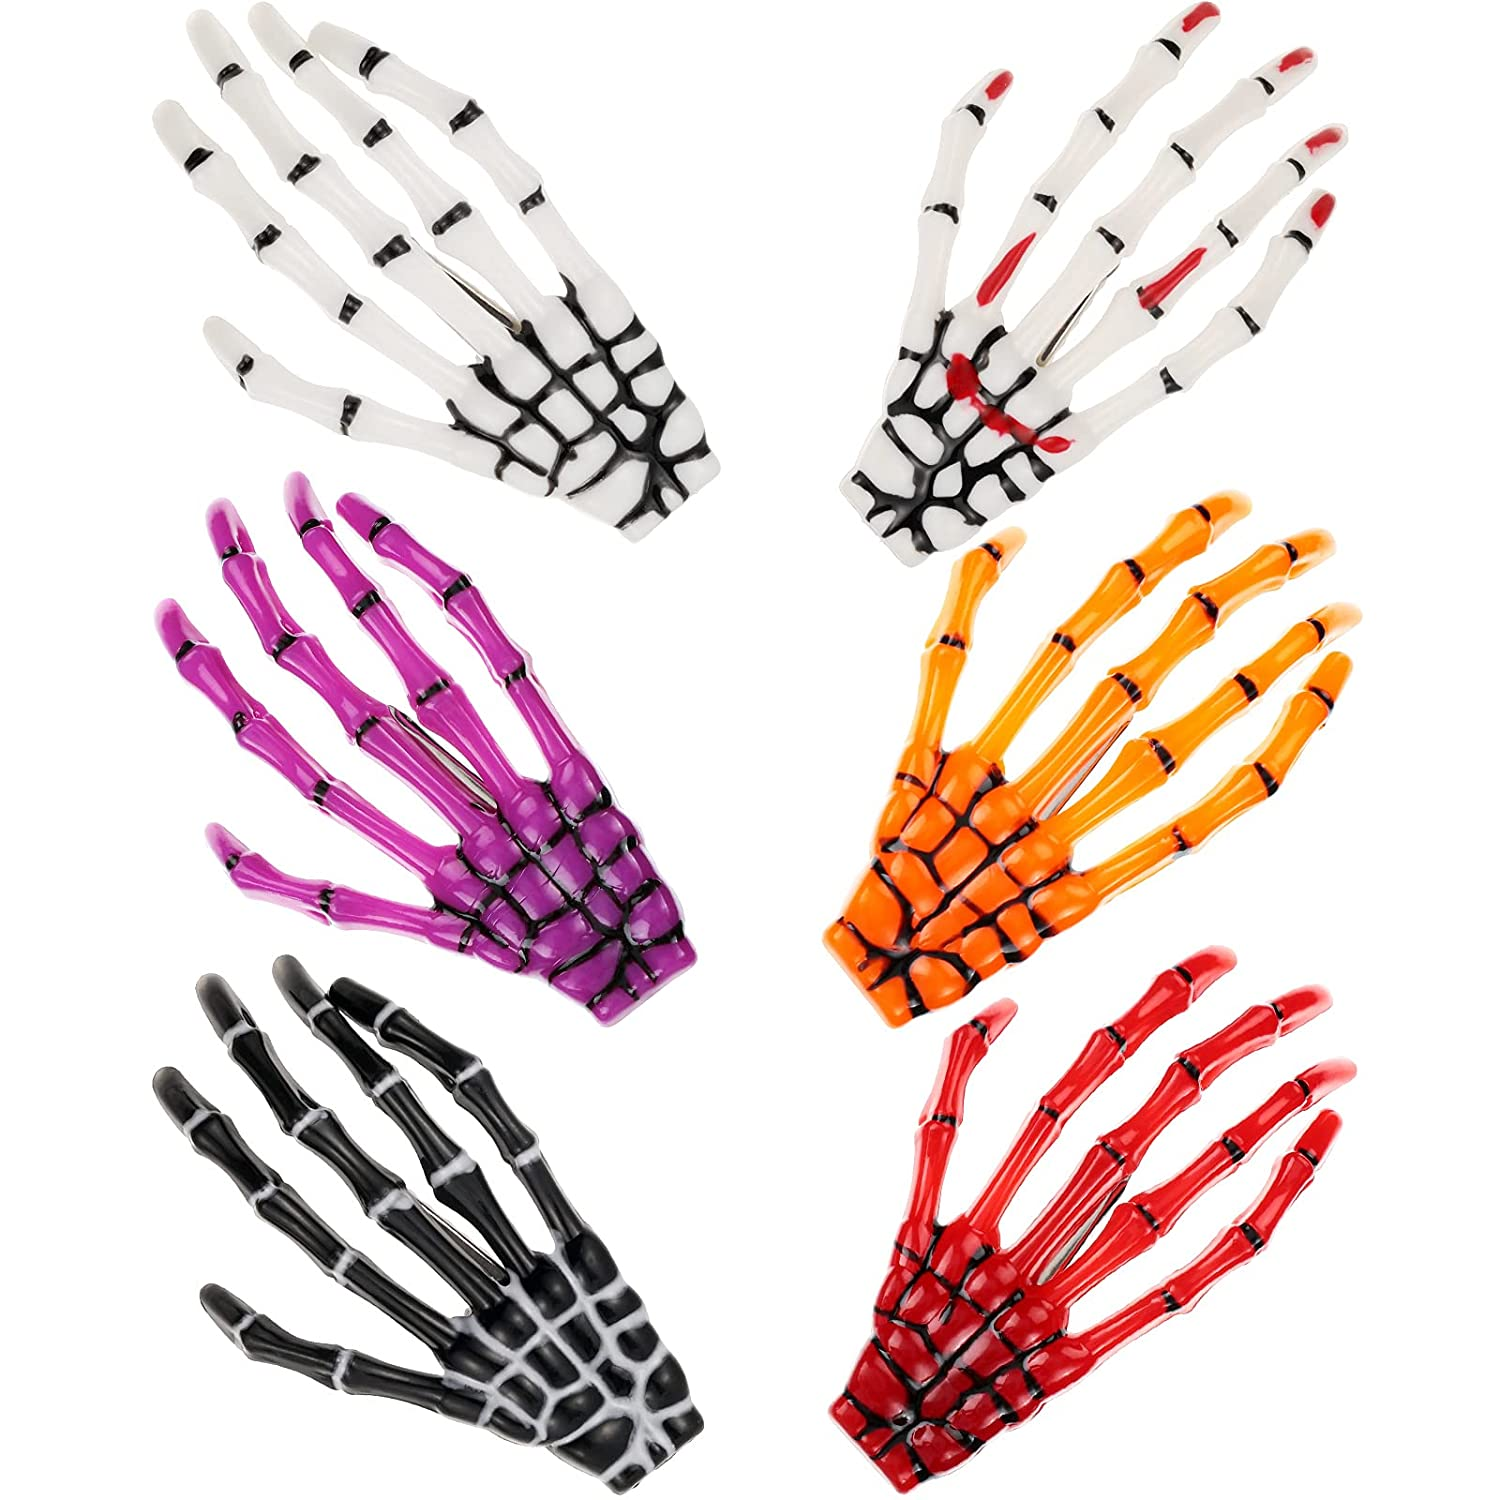 6 Pieces Skeleton Spring new work Hands Bone Hair Limited time sale Cl Claws Clips Skull Hand